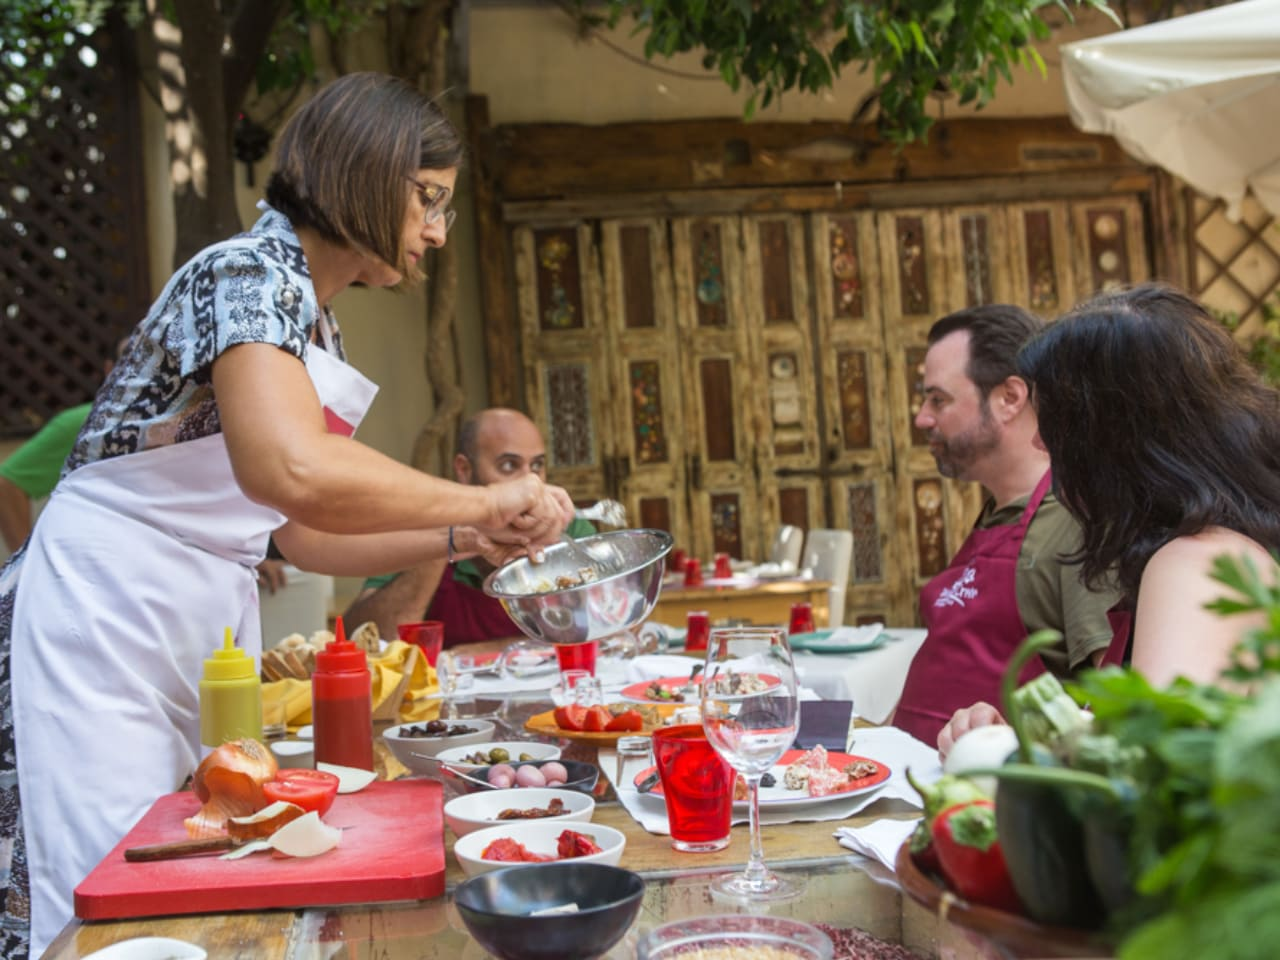 Cooking Lessons In Rethymno, An Authentic Cretan Cooking Experience, avli restaurant cooking workshop, avli restaurant cooking experience, best activities  rethimno rethymno, activity rethimno rethymno crete, cooking lesson rethymno crete